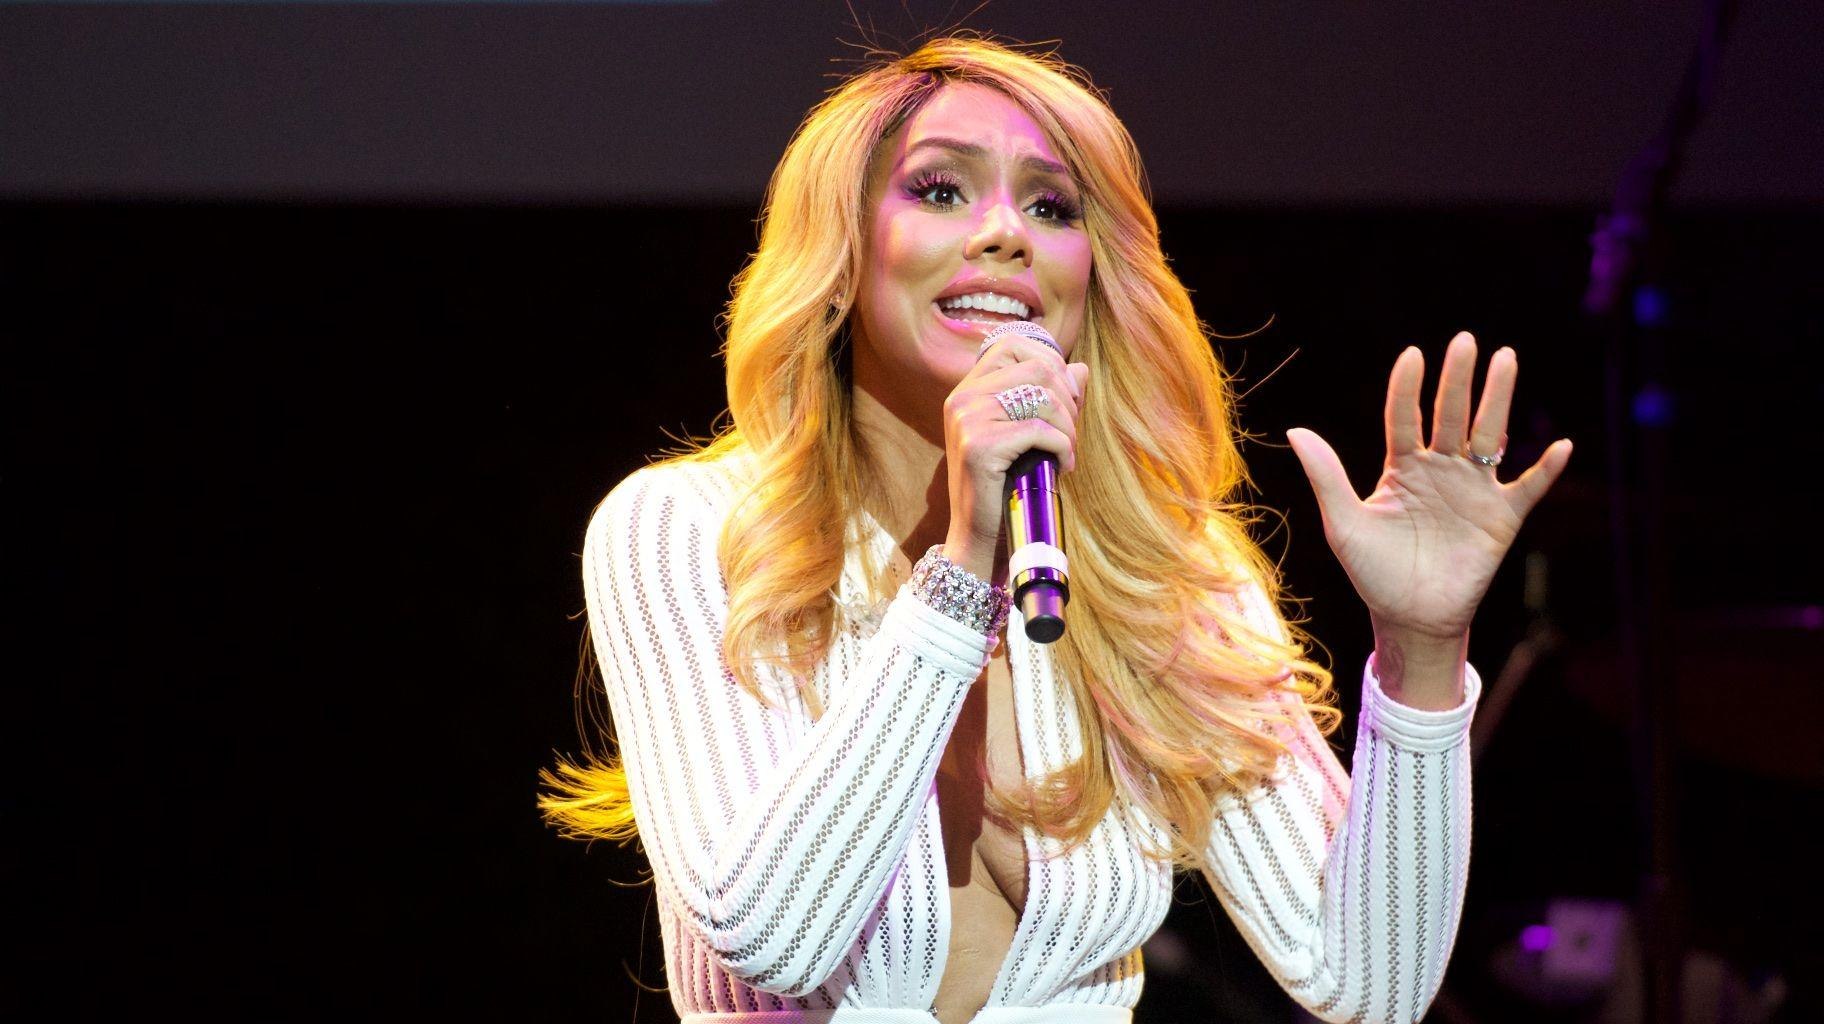 Tamar Braxton Shares A Video From One Of Her Concerts And Calls Herself 'Superwoman'